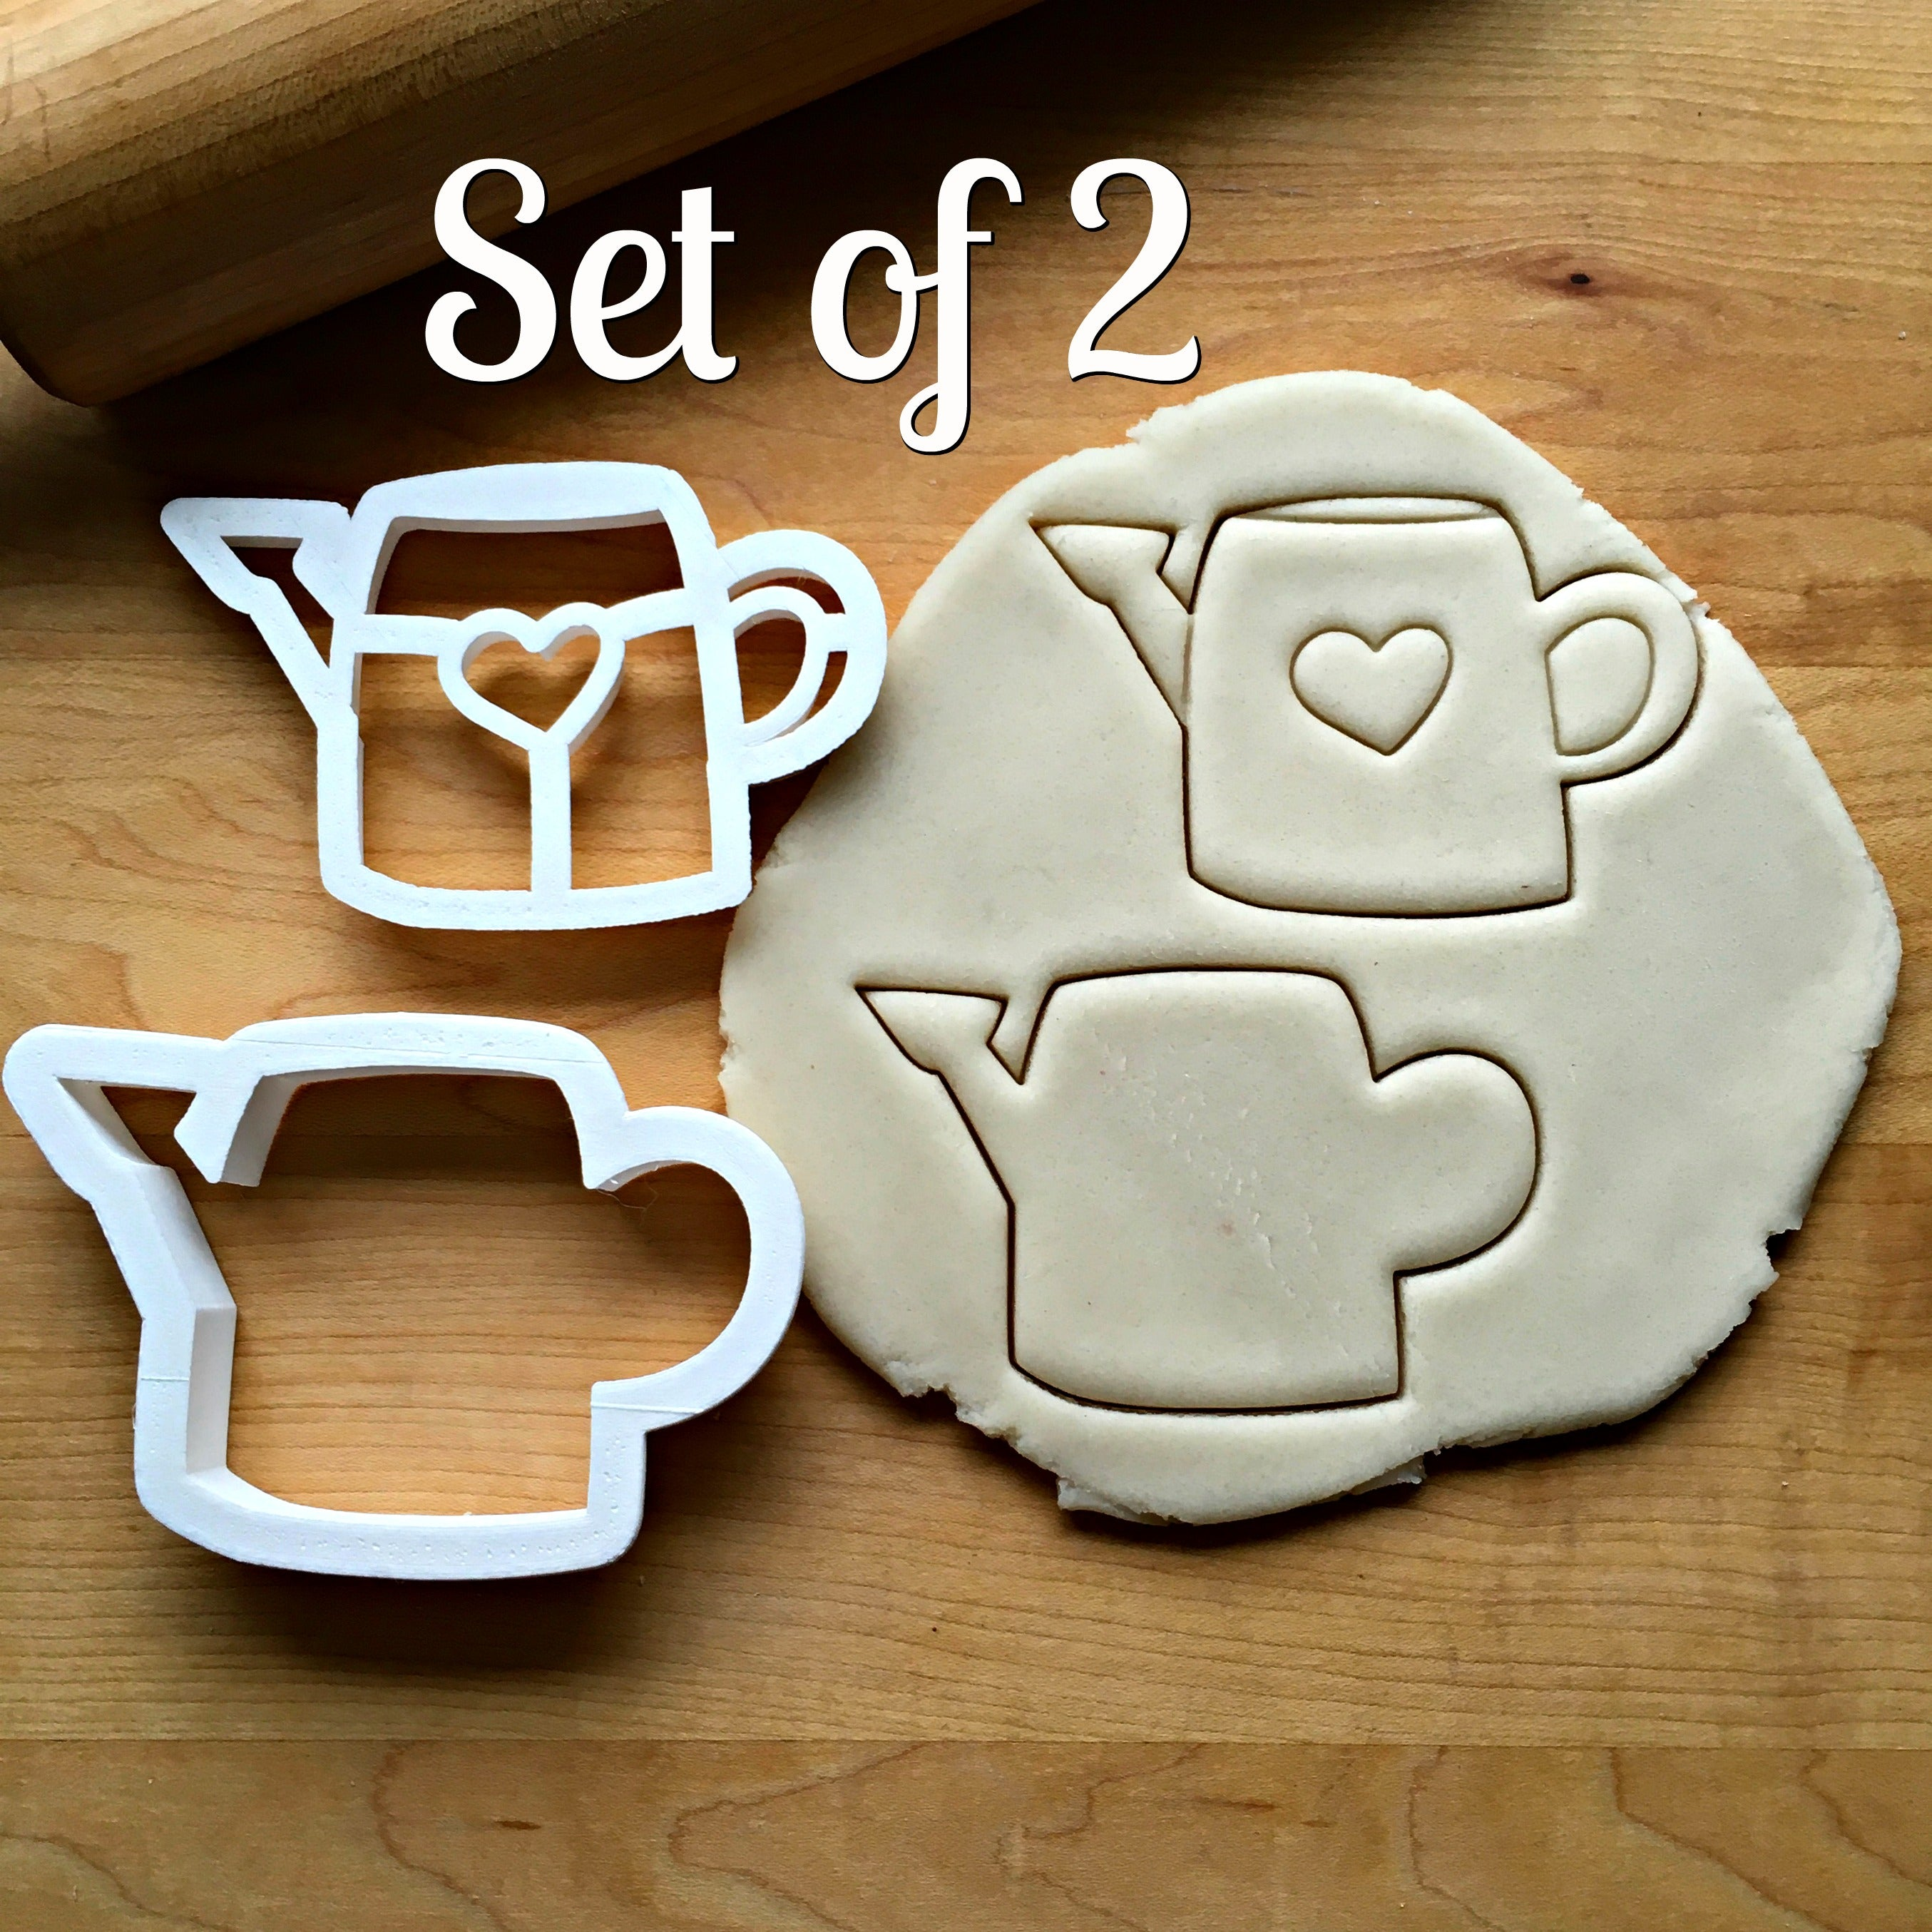 Set of 2 Watering Can Cookie Cutters/Dishwasher Safe